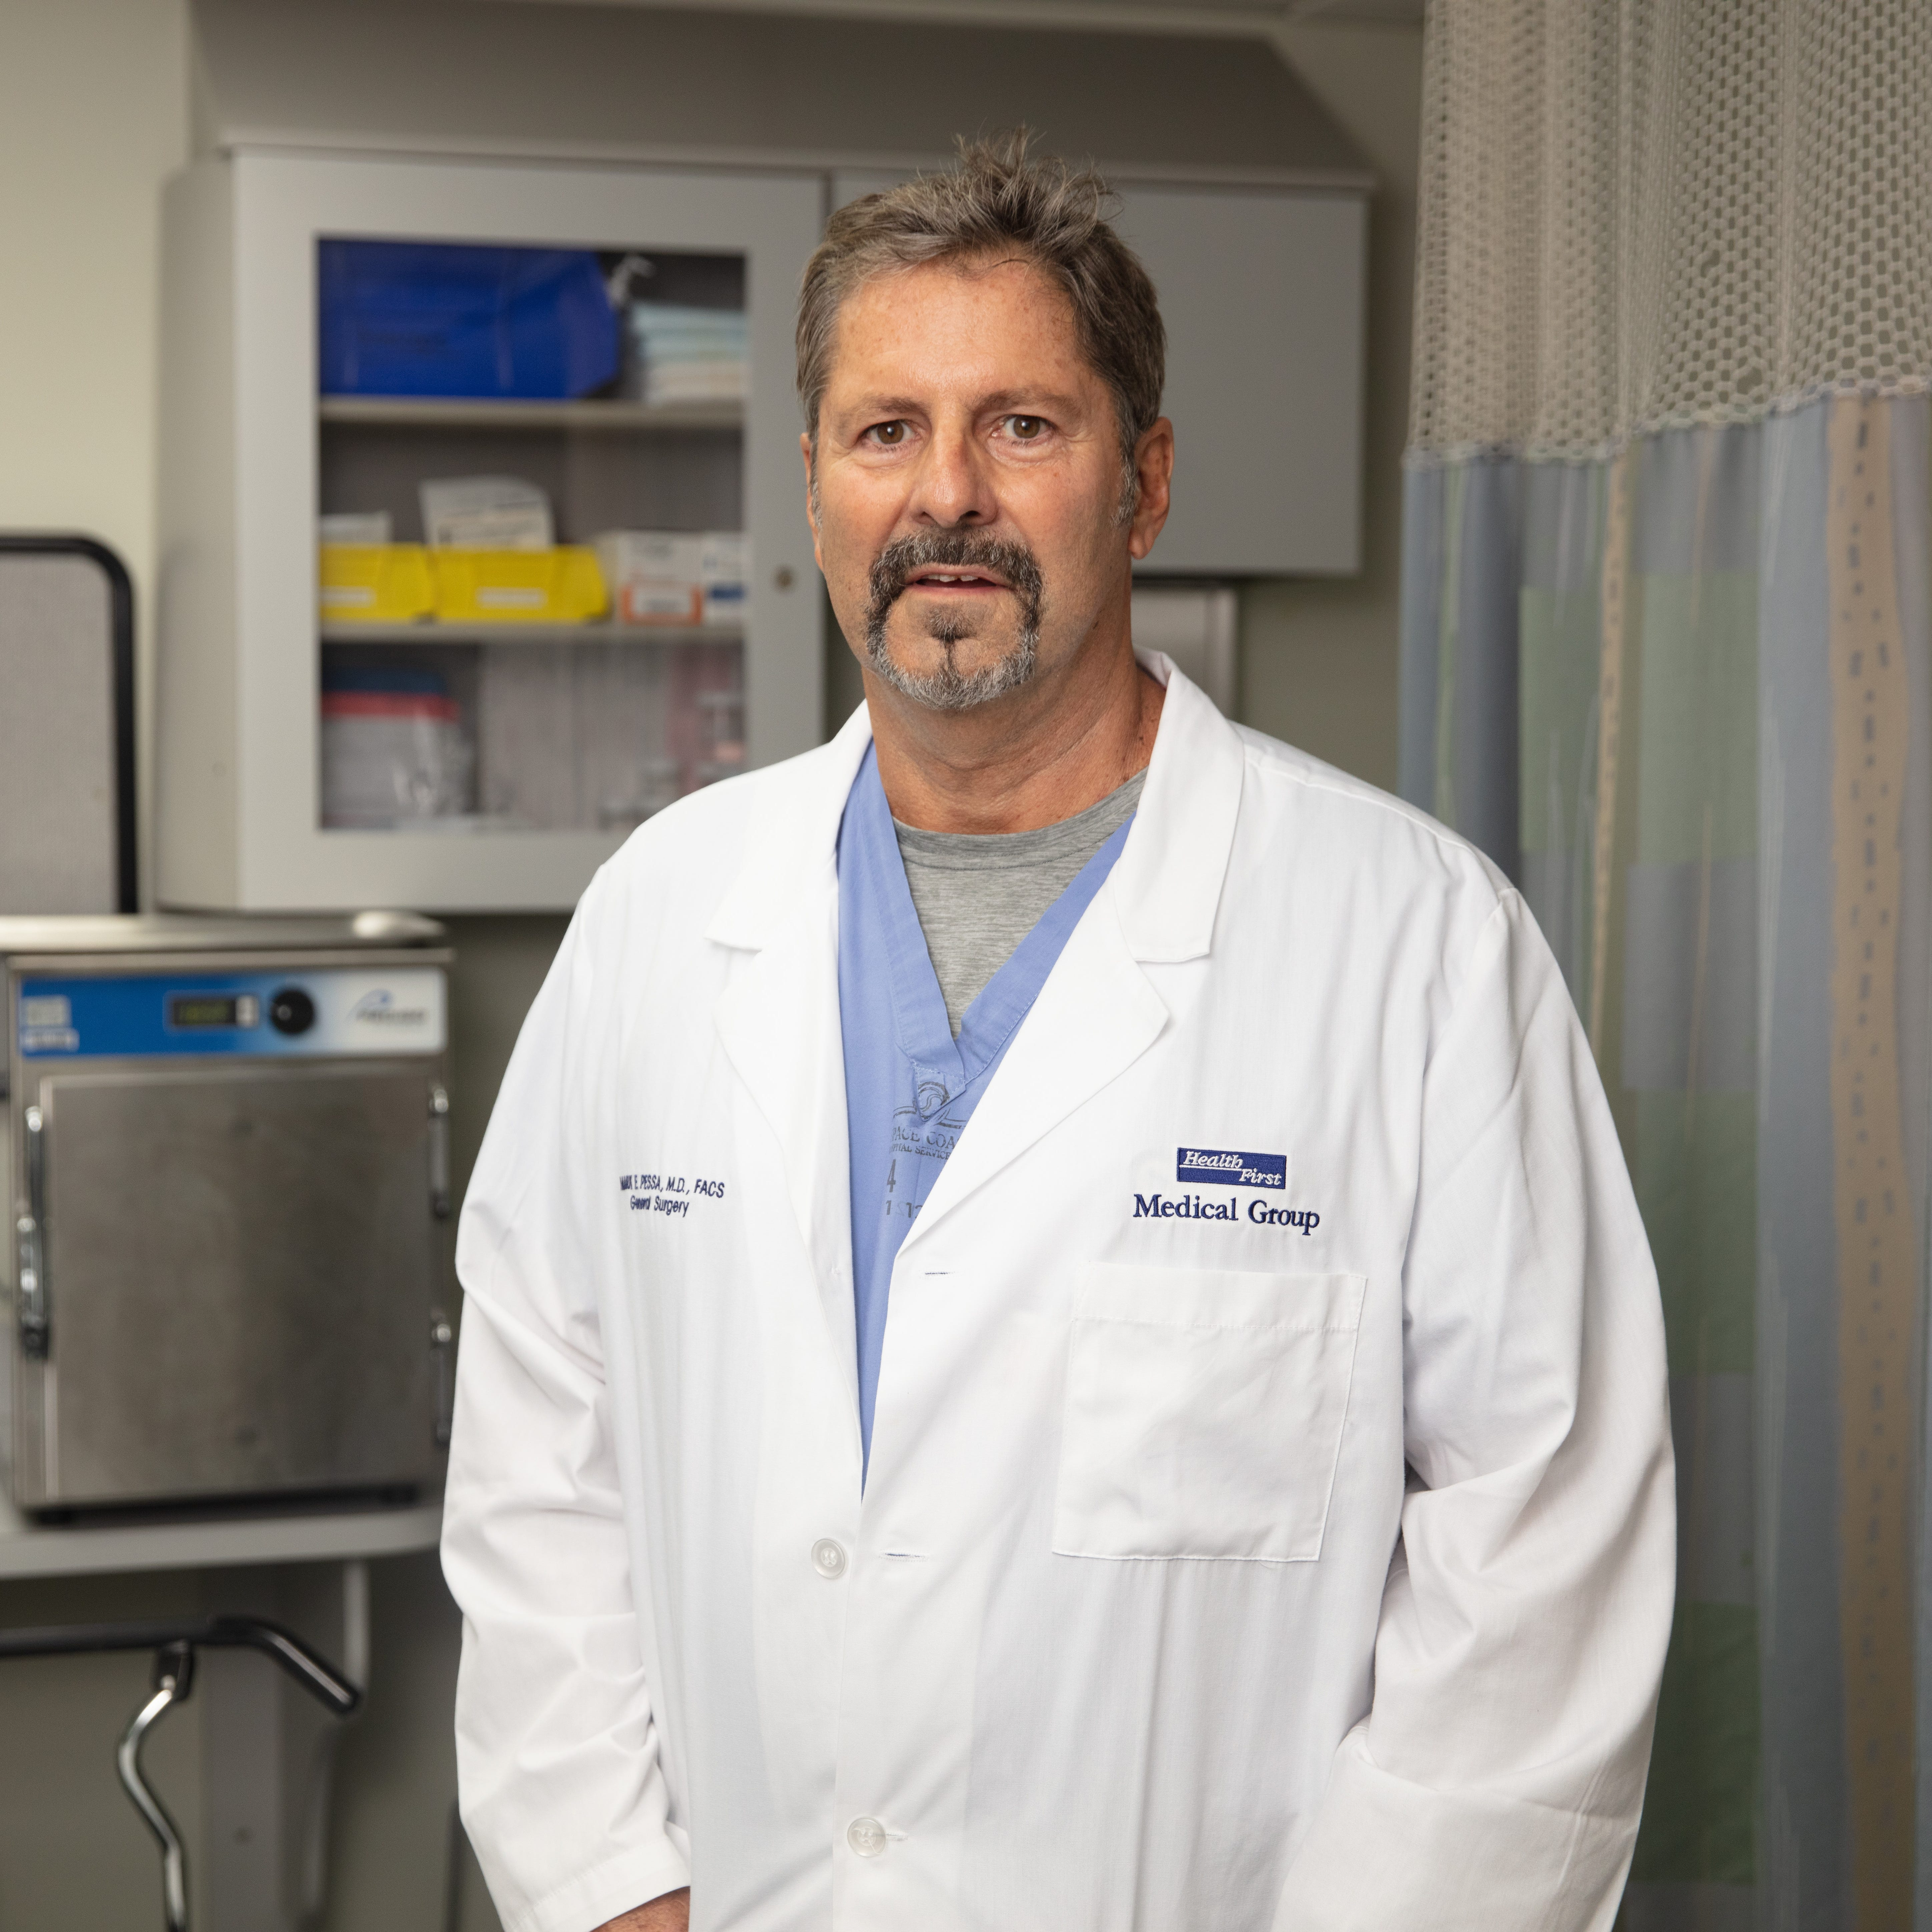 Health pro: Surgeon combines science with love of people